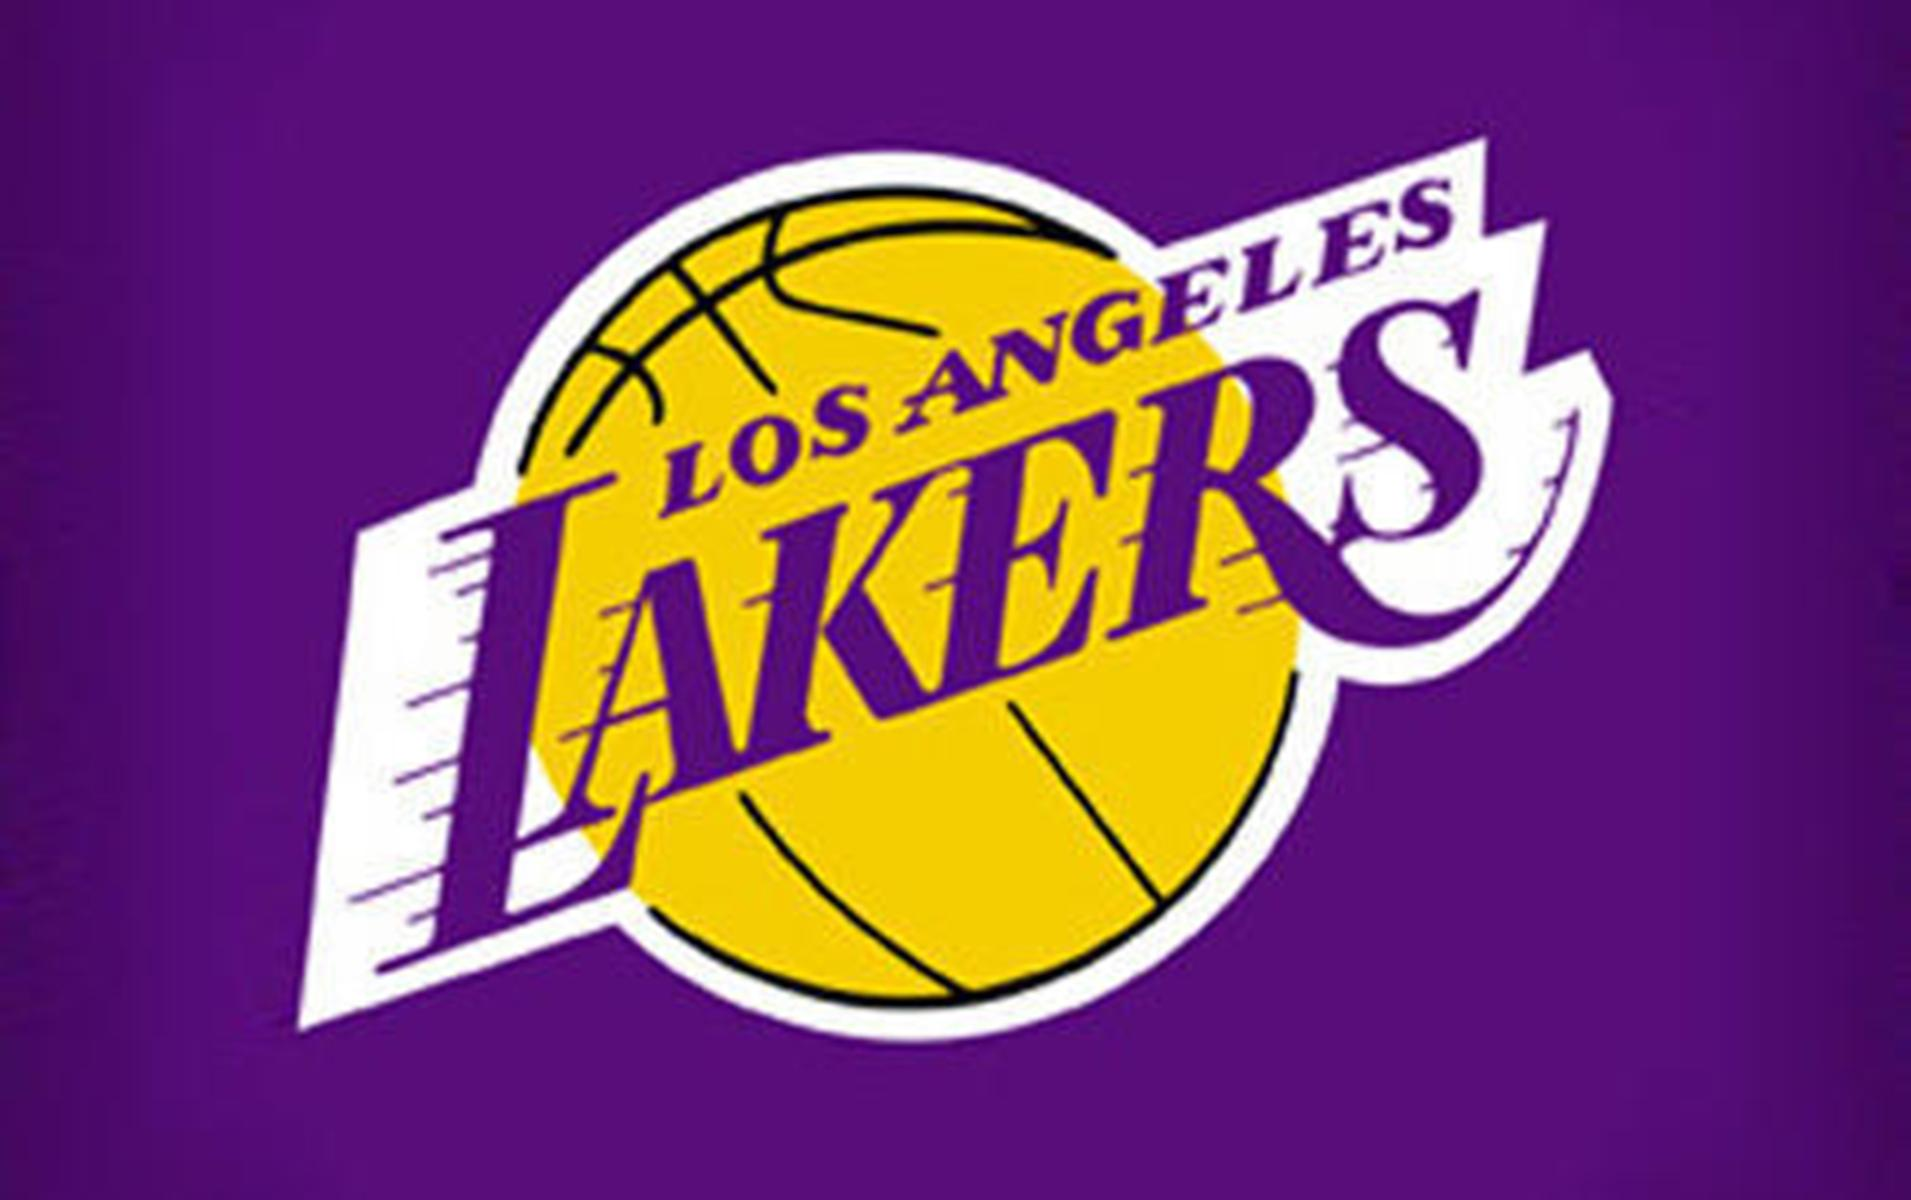 lakers logo wallpapers - photo #6